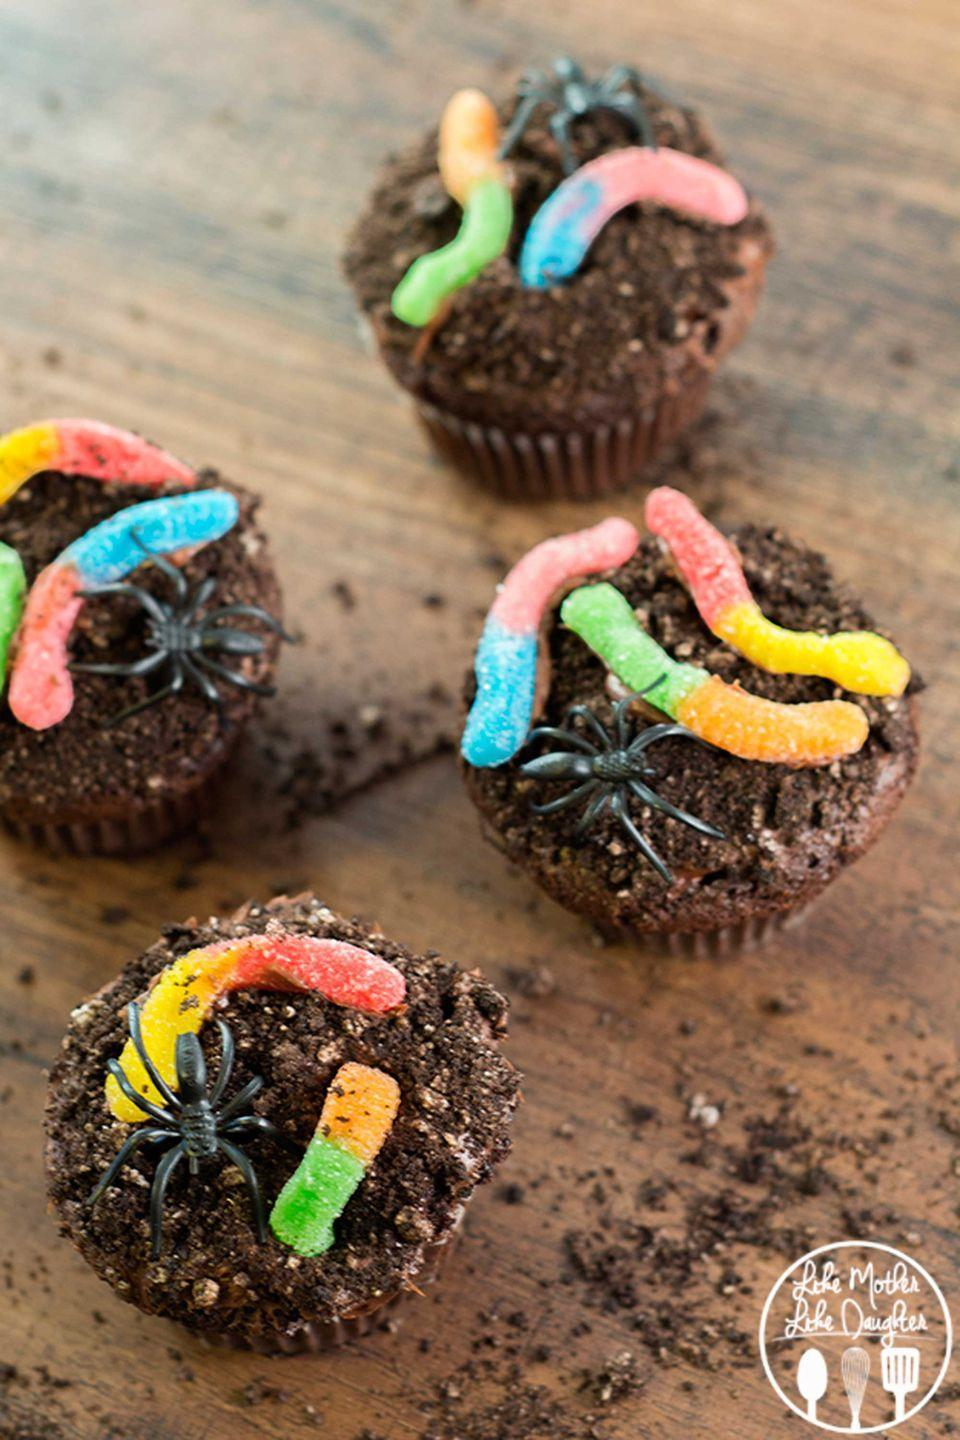 """<p>Simulate a creepy, crawly forest floor with crushed Oreos, gummy worms, and plastic spider toppers. </p><p><strong>Get the recipe at </strong><strong><a href=""""http://lmld.org/2014/10/22/dirt-cupcakes/"""" rel=""""nofollow noopener"""" target=""""_blank"""" data-ylk=""""slk:Like Mother Like Daughter"""" class=""""link rapid-noclick-resp"""">Like Mother Like Daughter</a>.</strong></p>"""